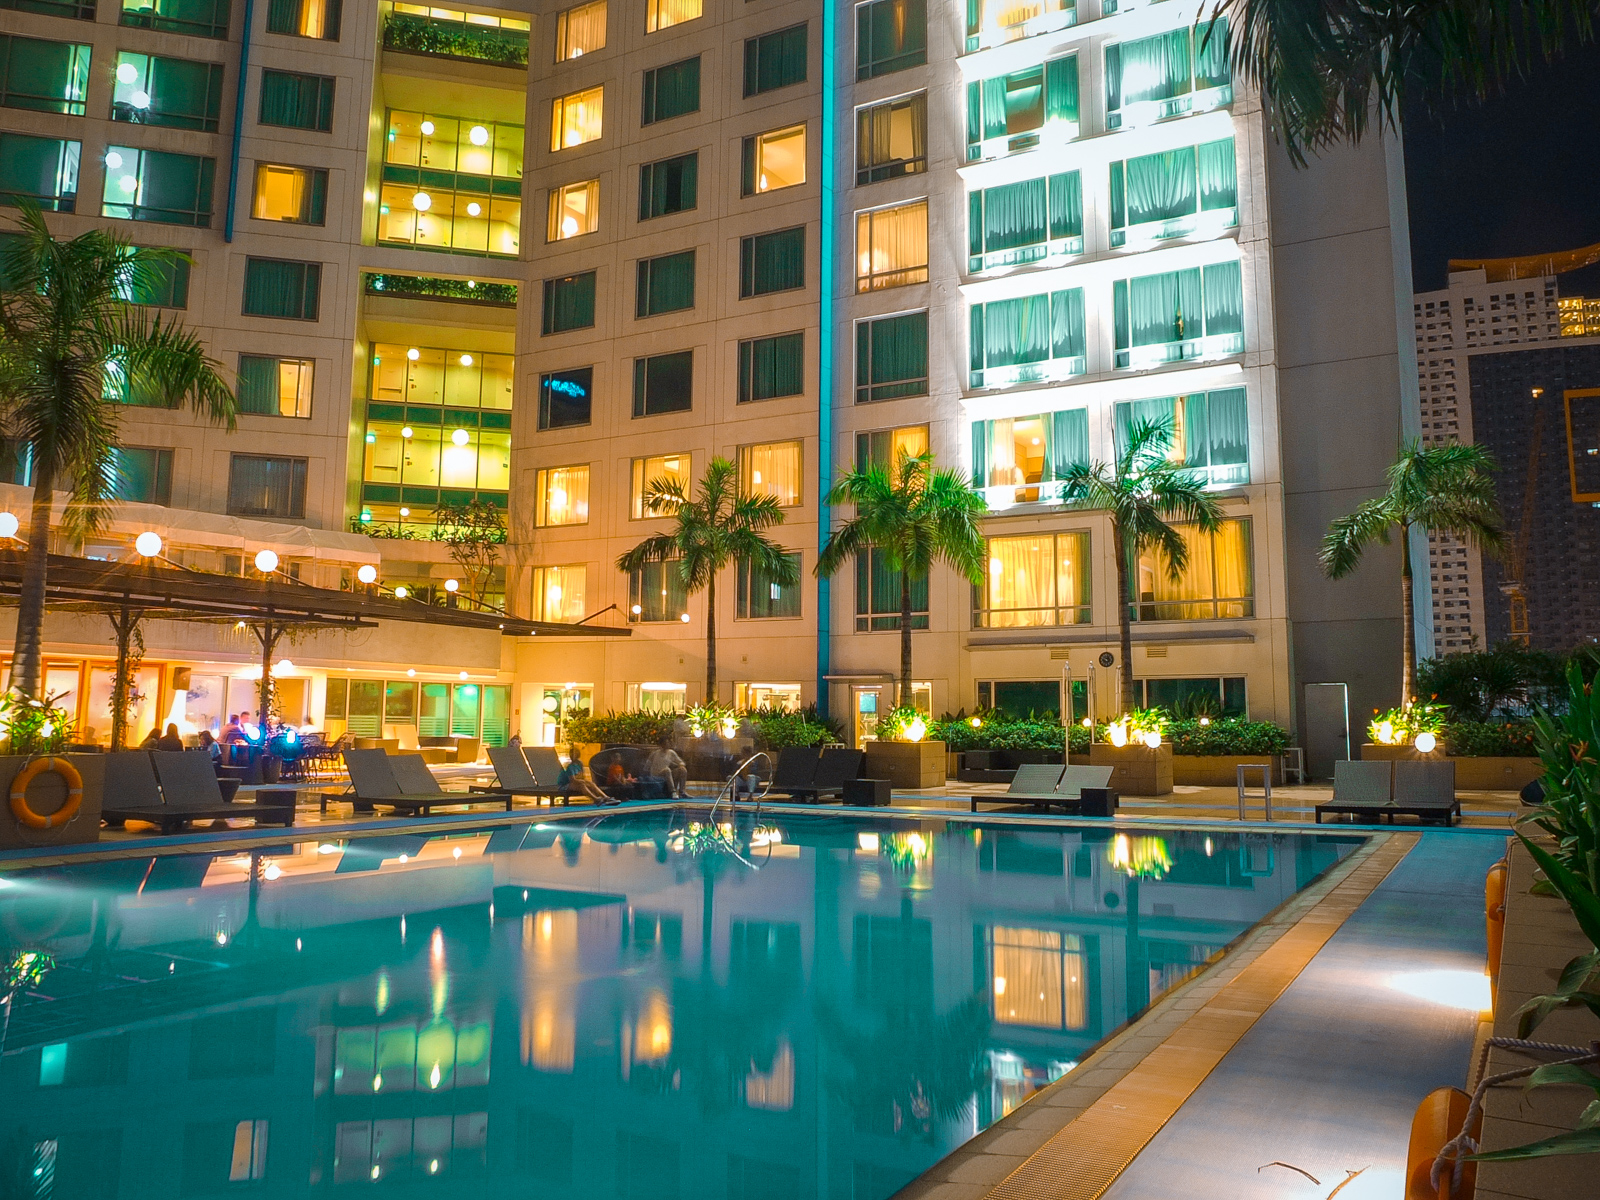 Novotel Manila Araneta Center: Why You Should Stay at the Executive Suites   Hotel Review